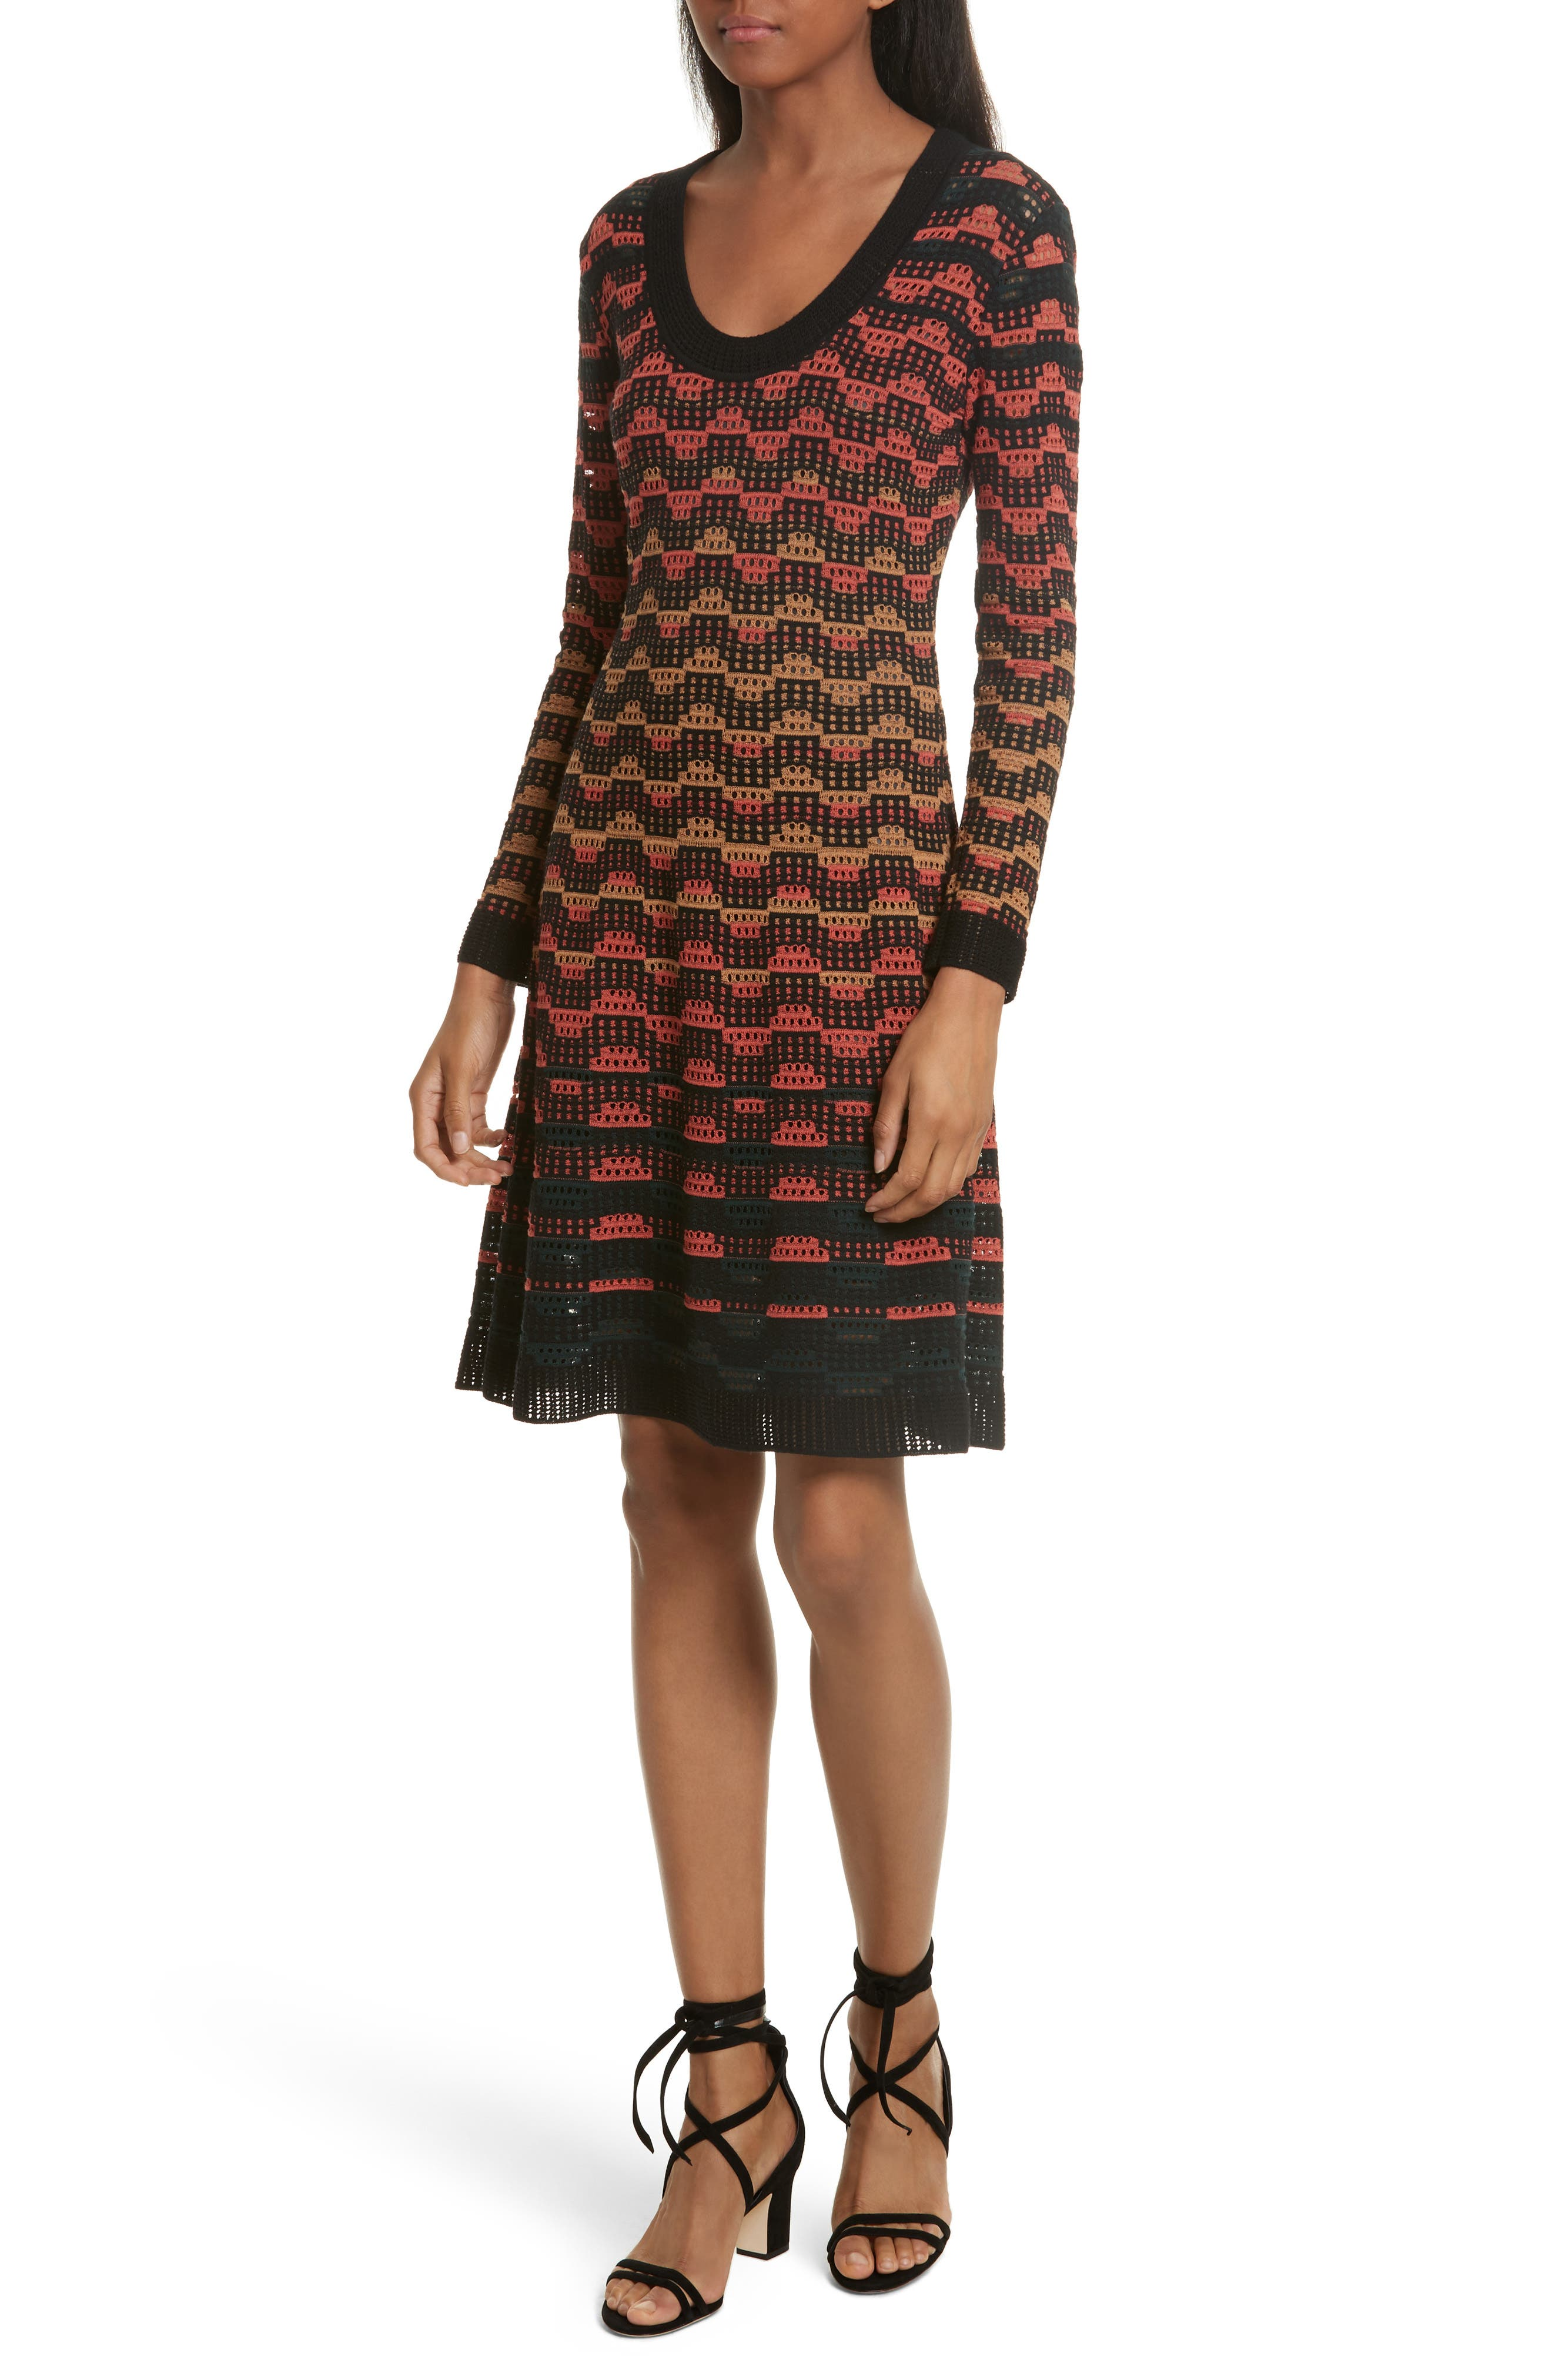 M Missoni Greek Open Knit Dress